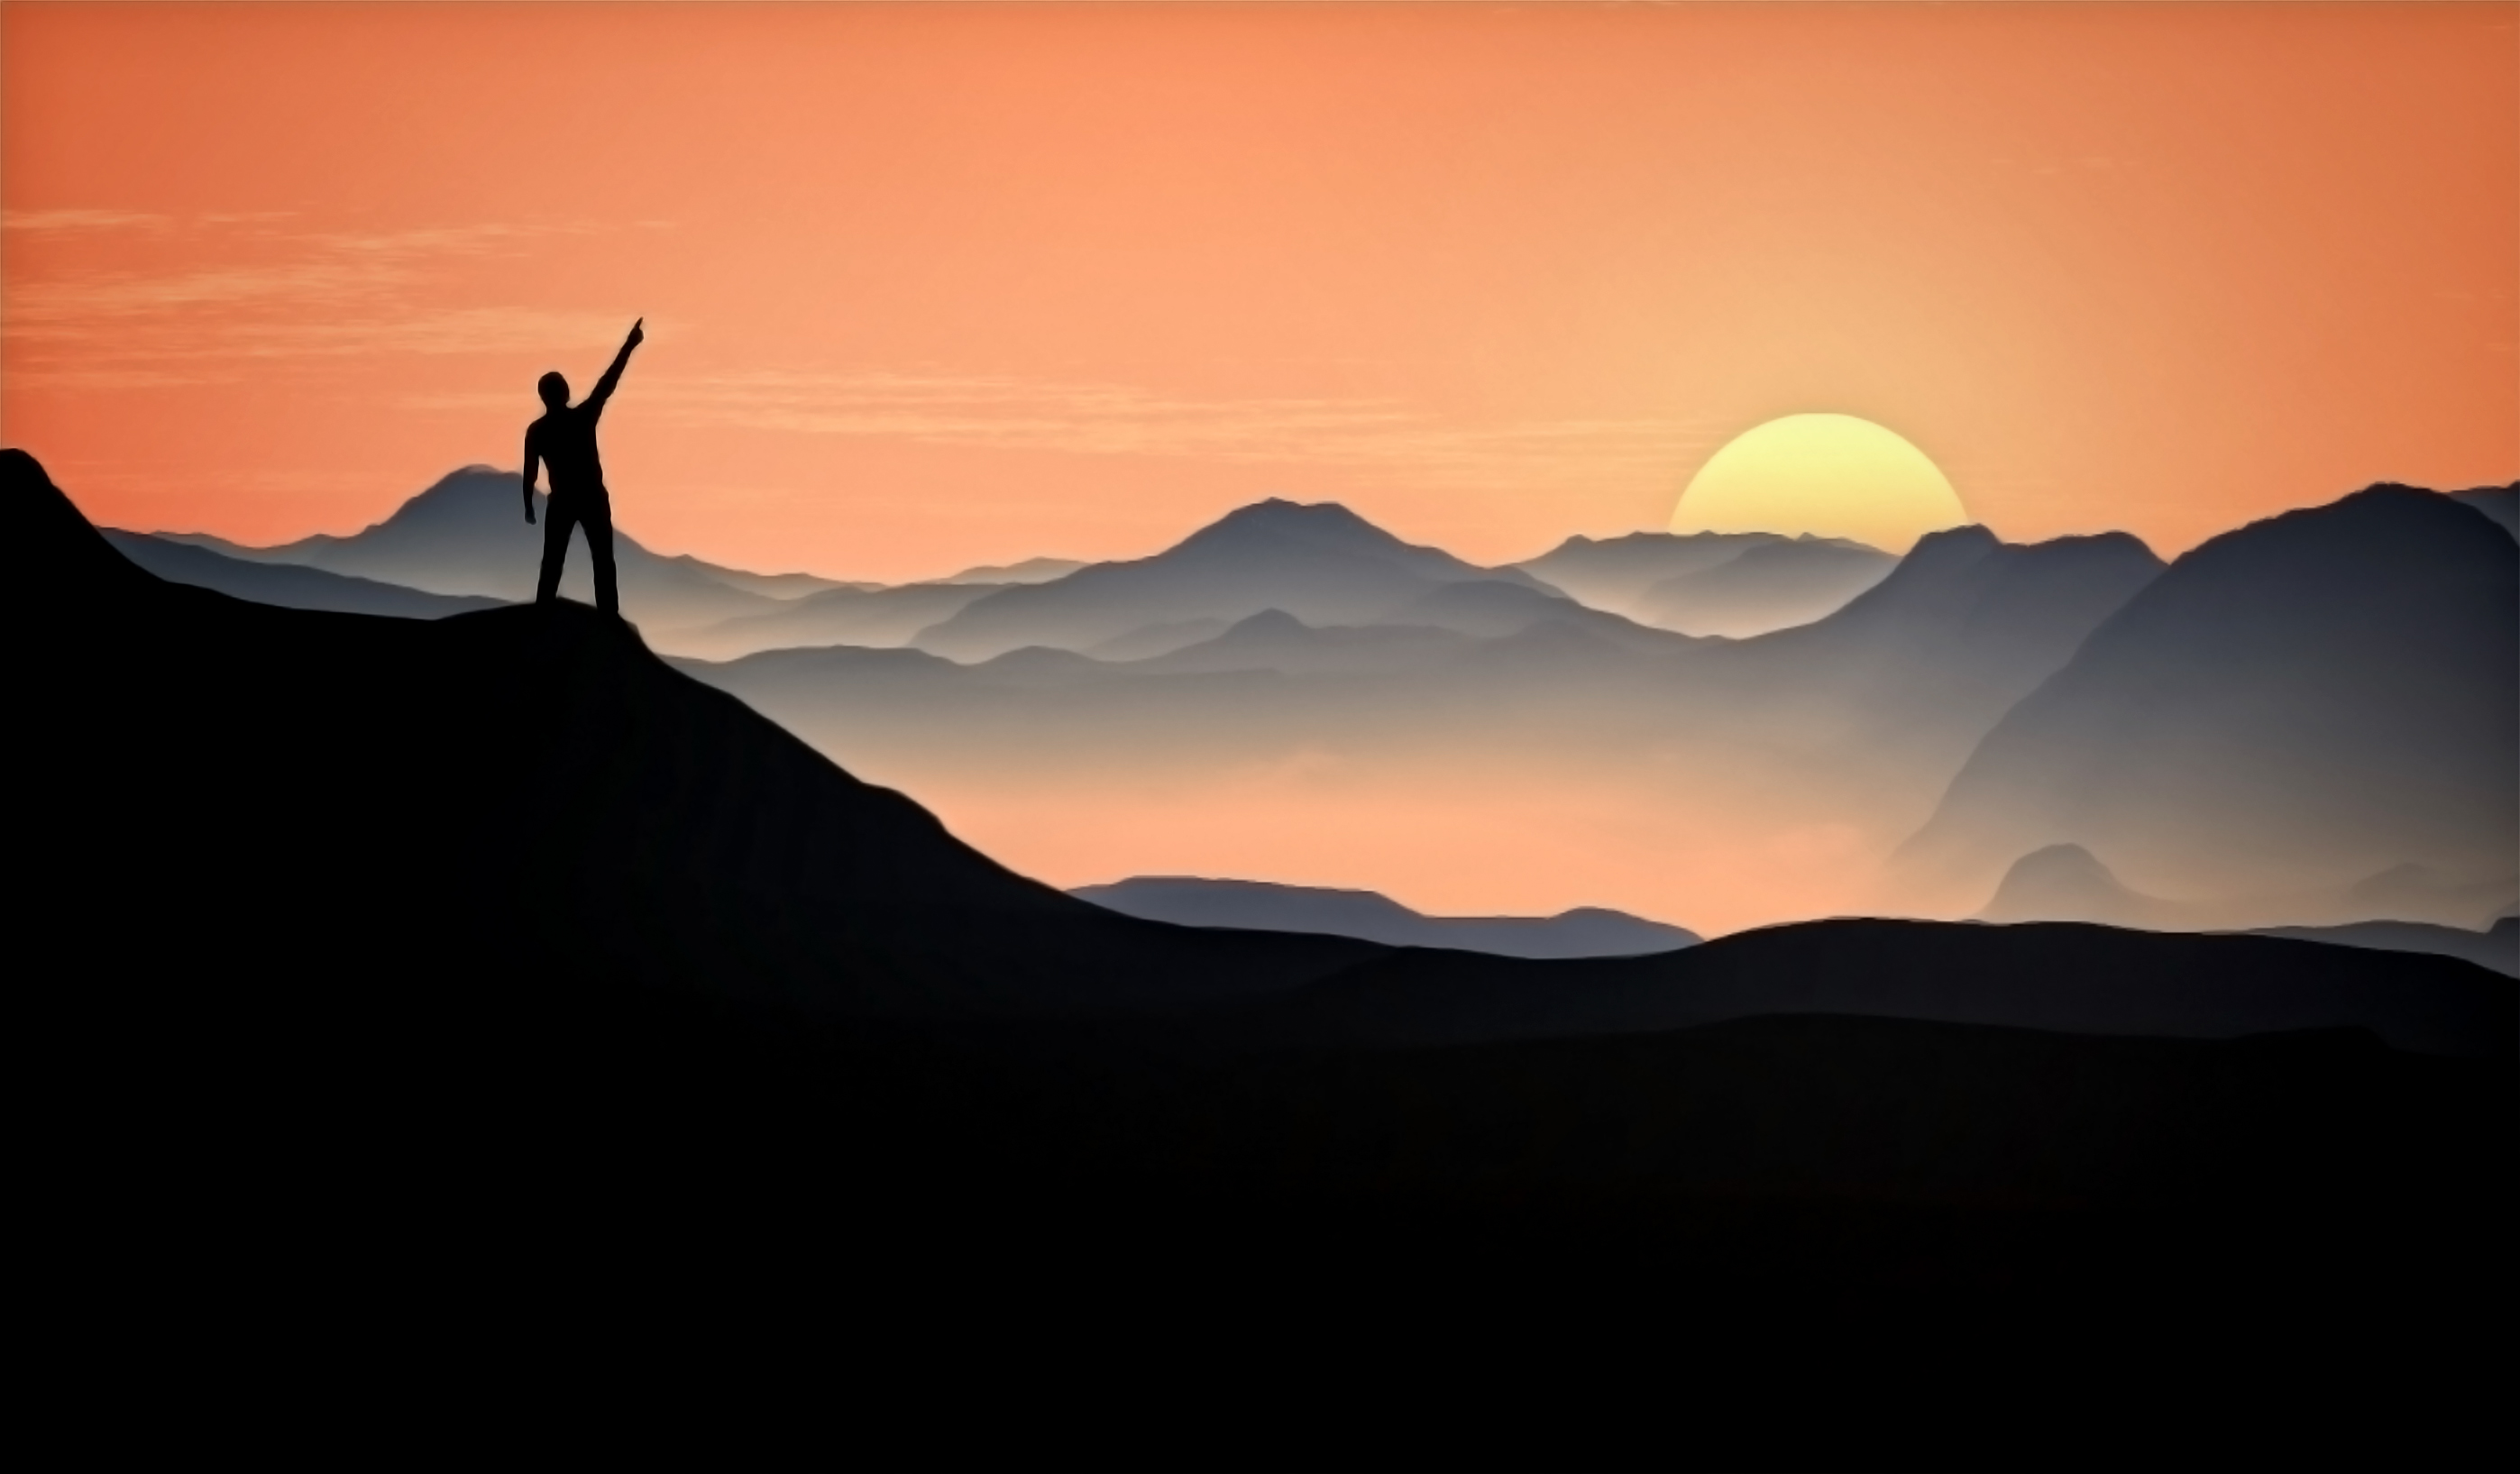 Man raising arm at the top of the mountain photo